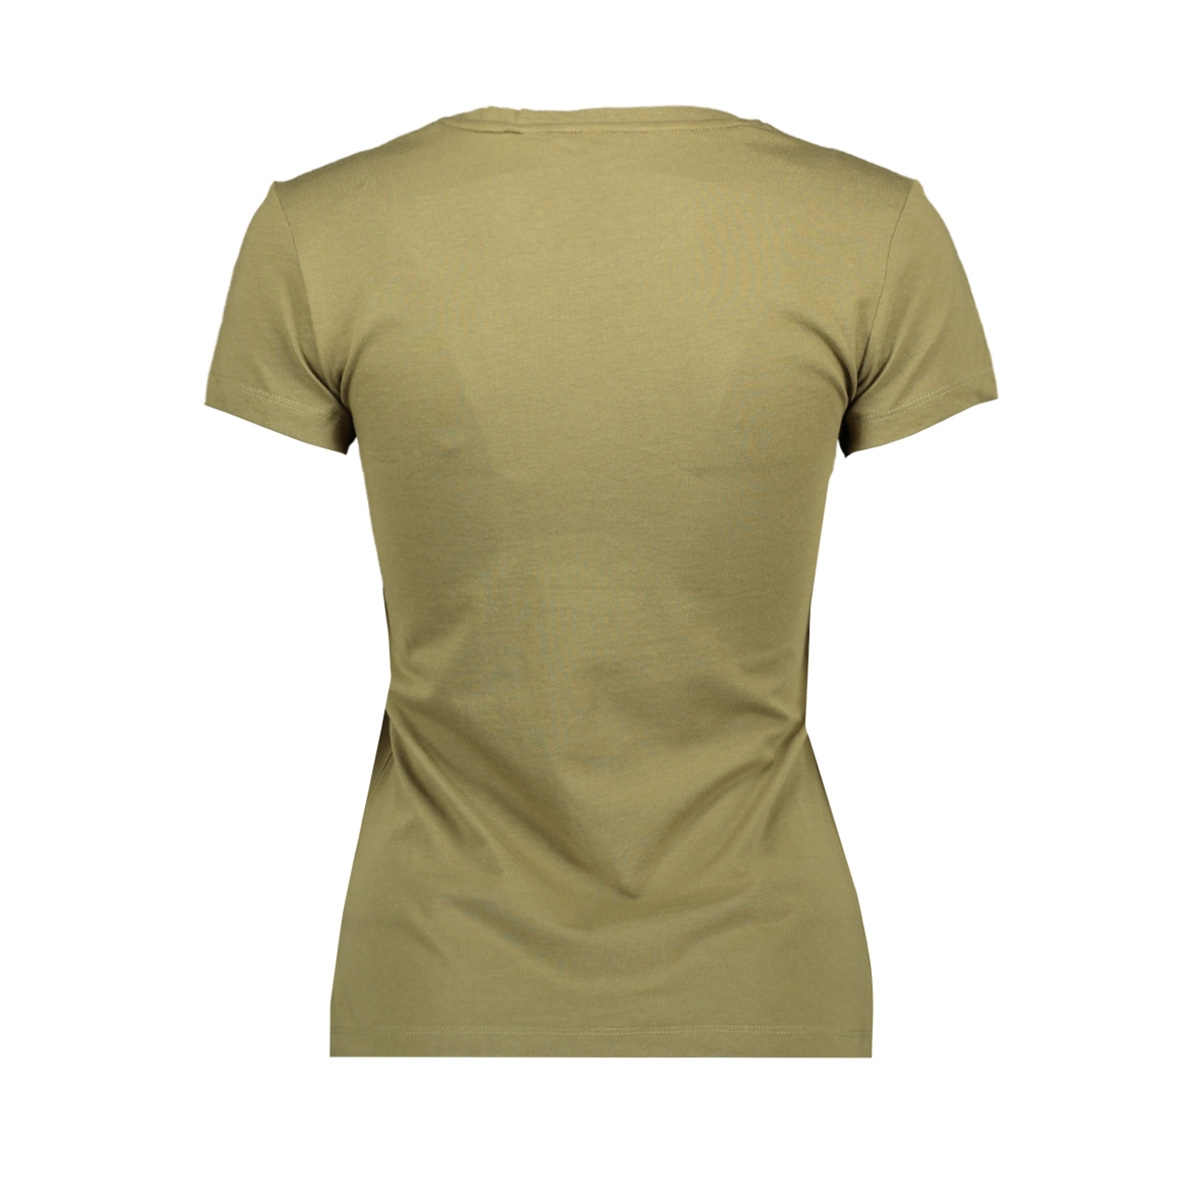 onlvalentina life fit s/s pho top c 15203380 only t-shirt martini olive/discover